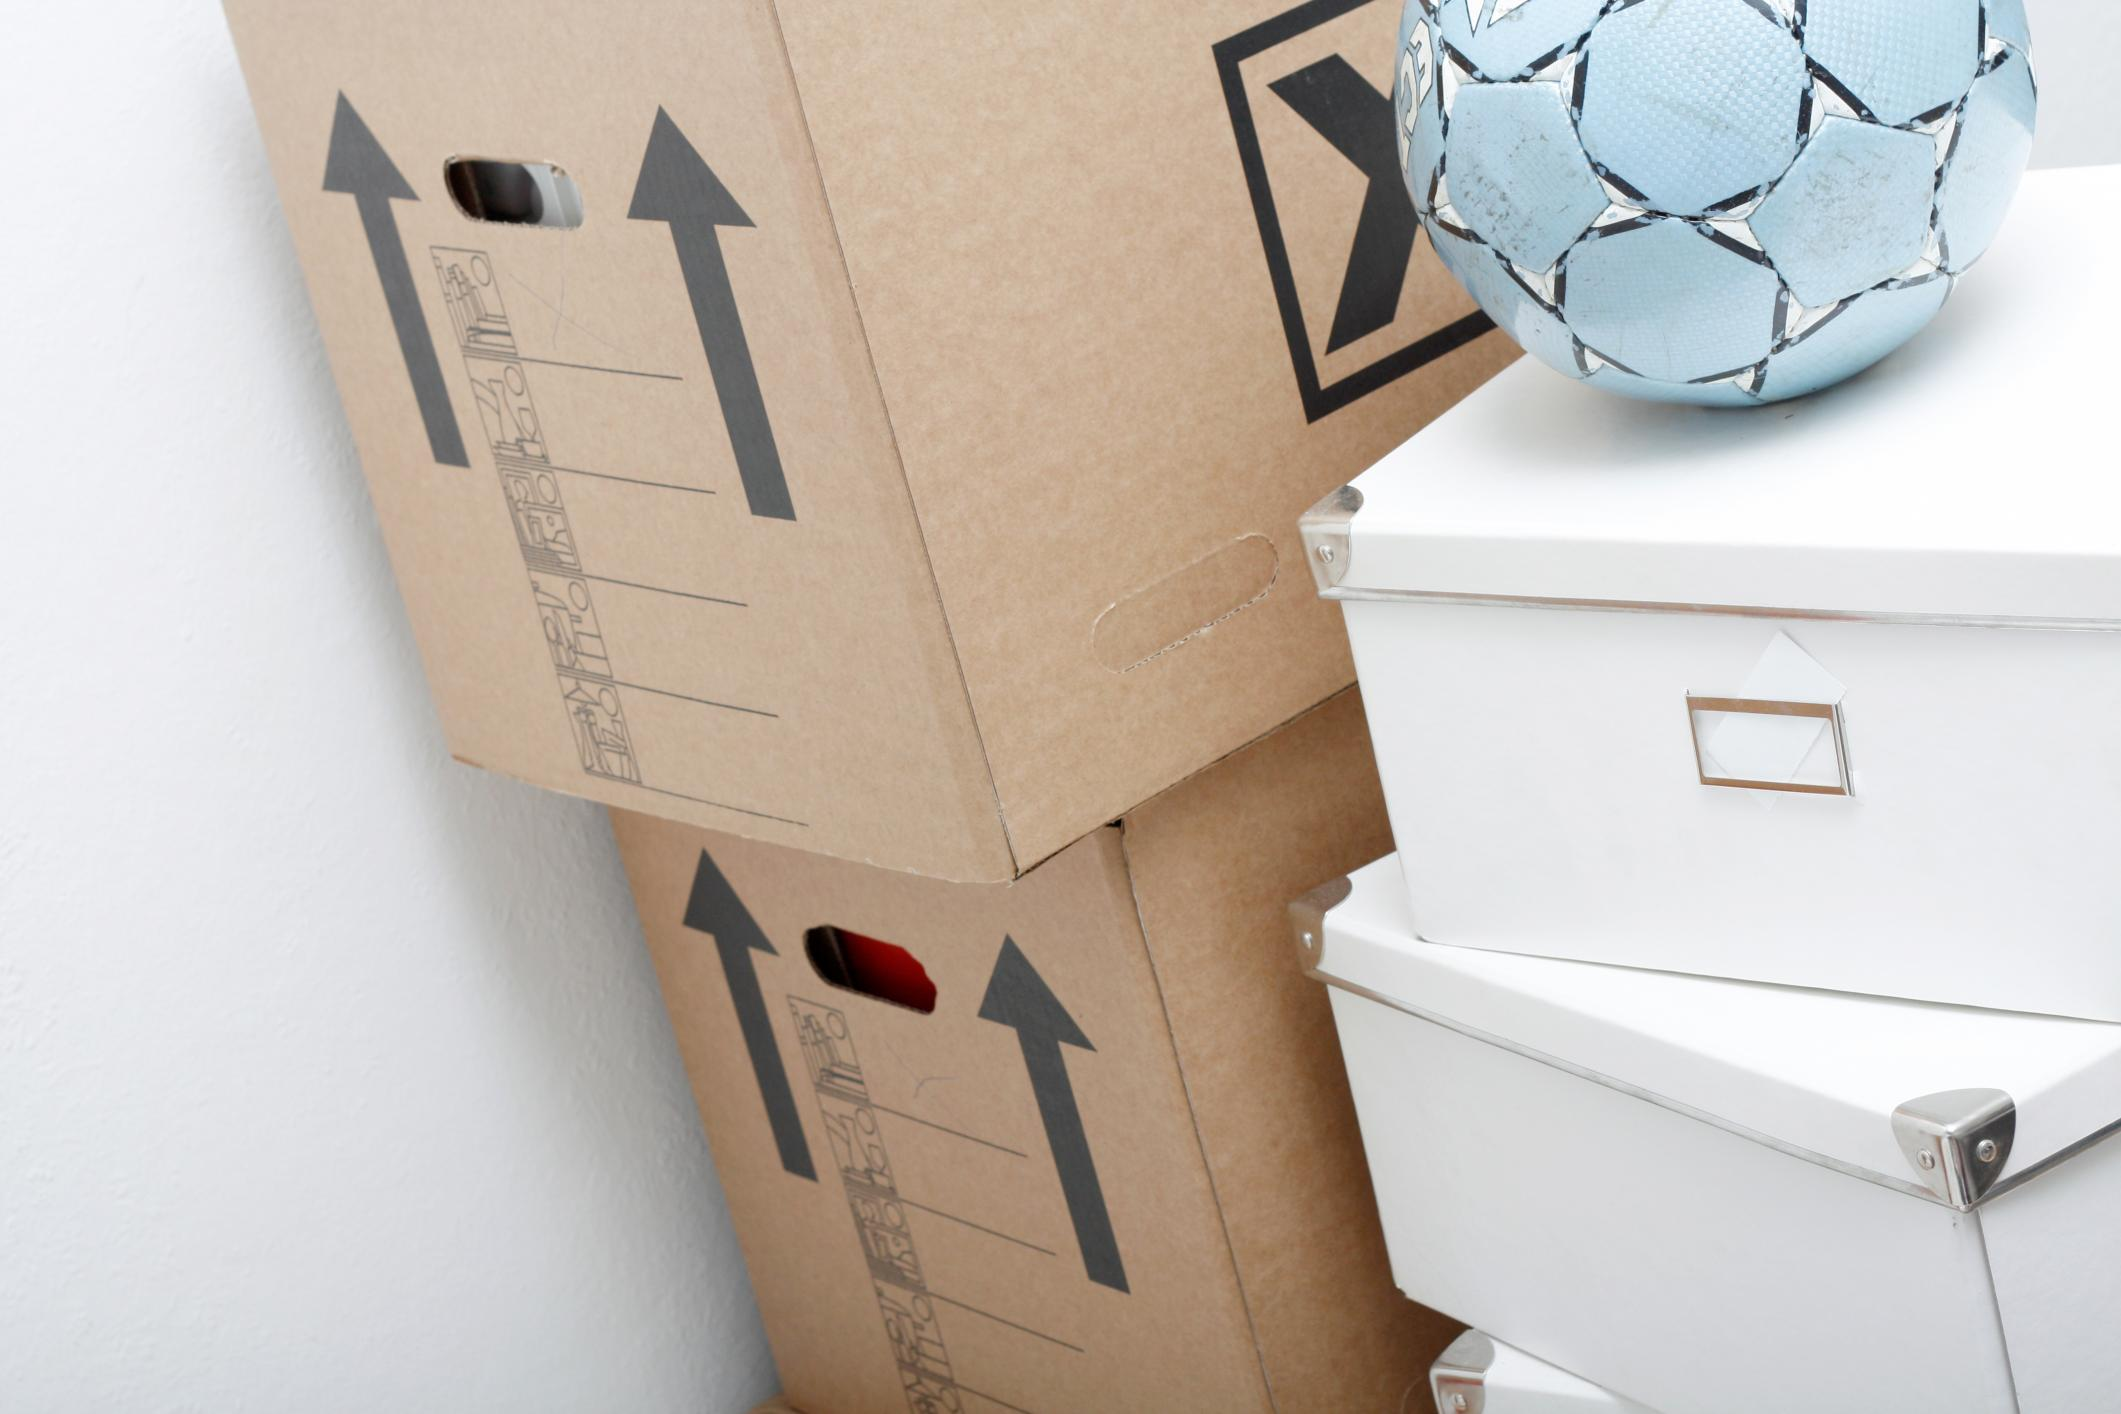 Packed items   movers and packers near me